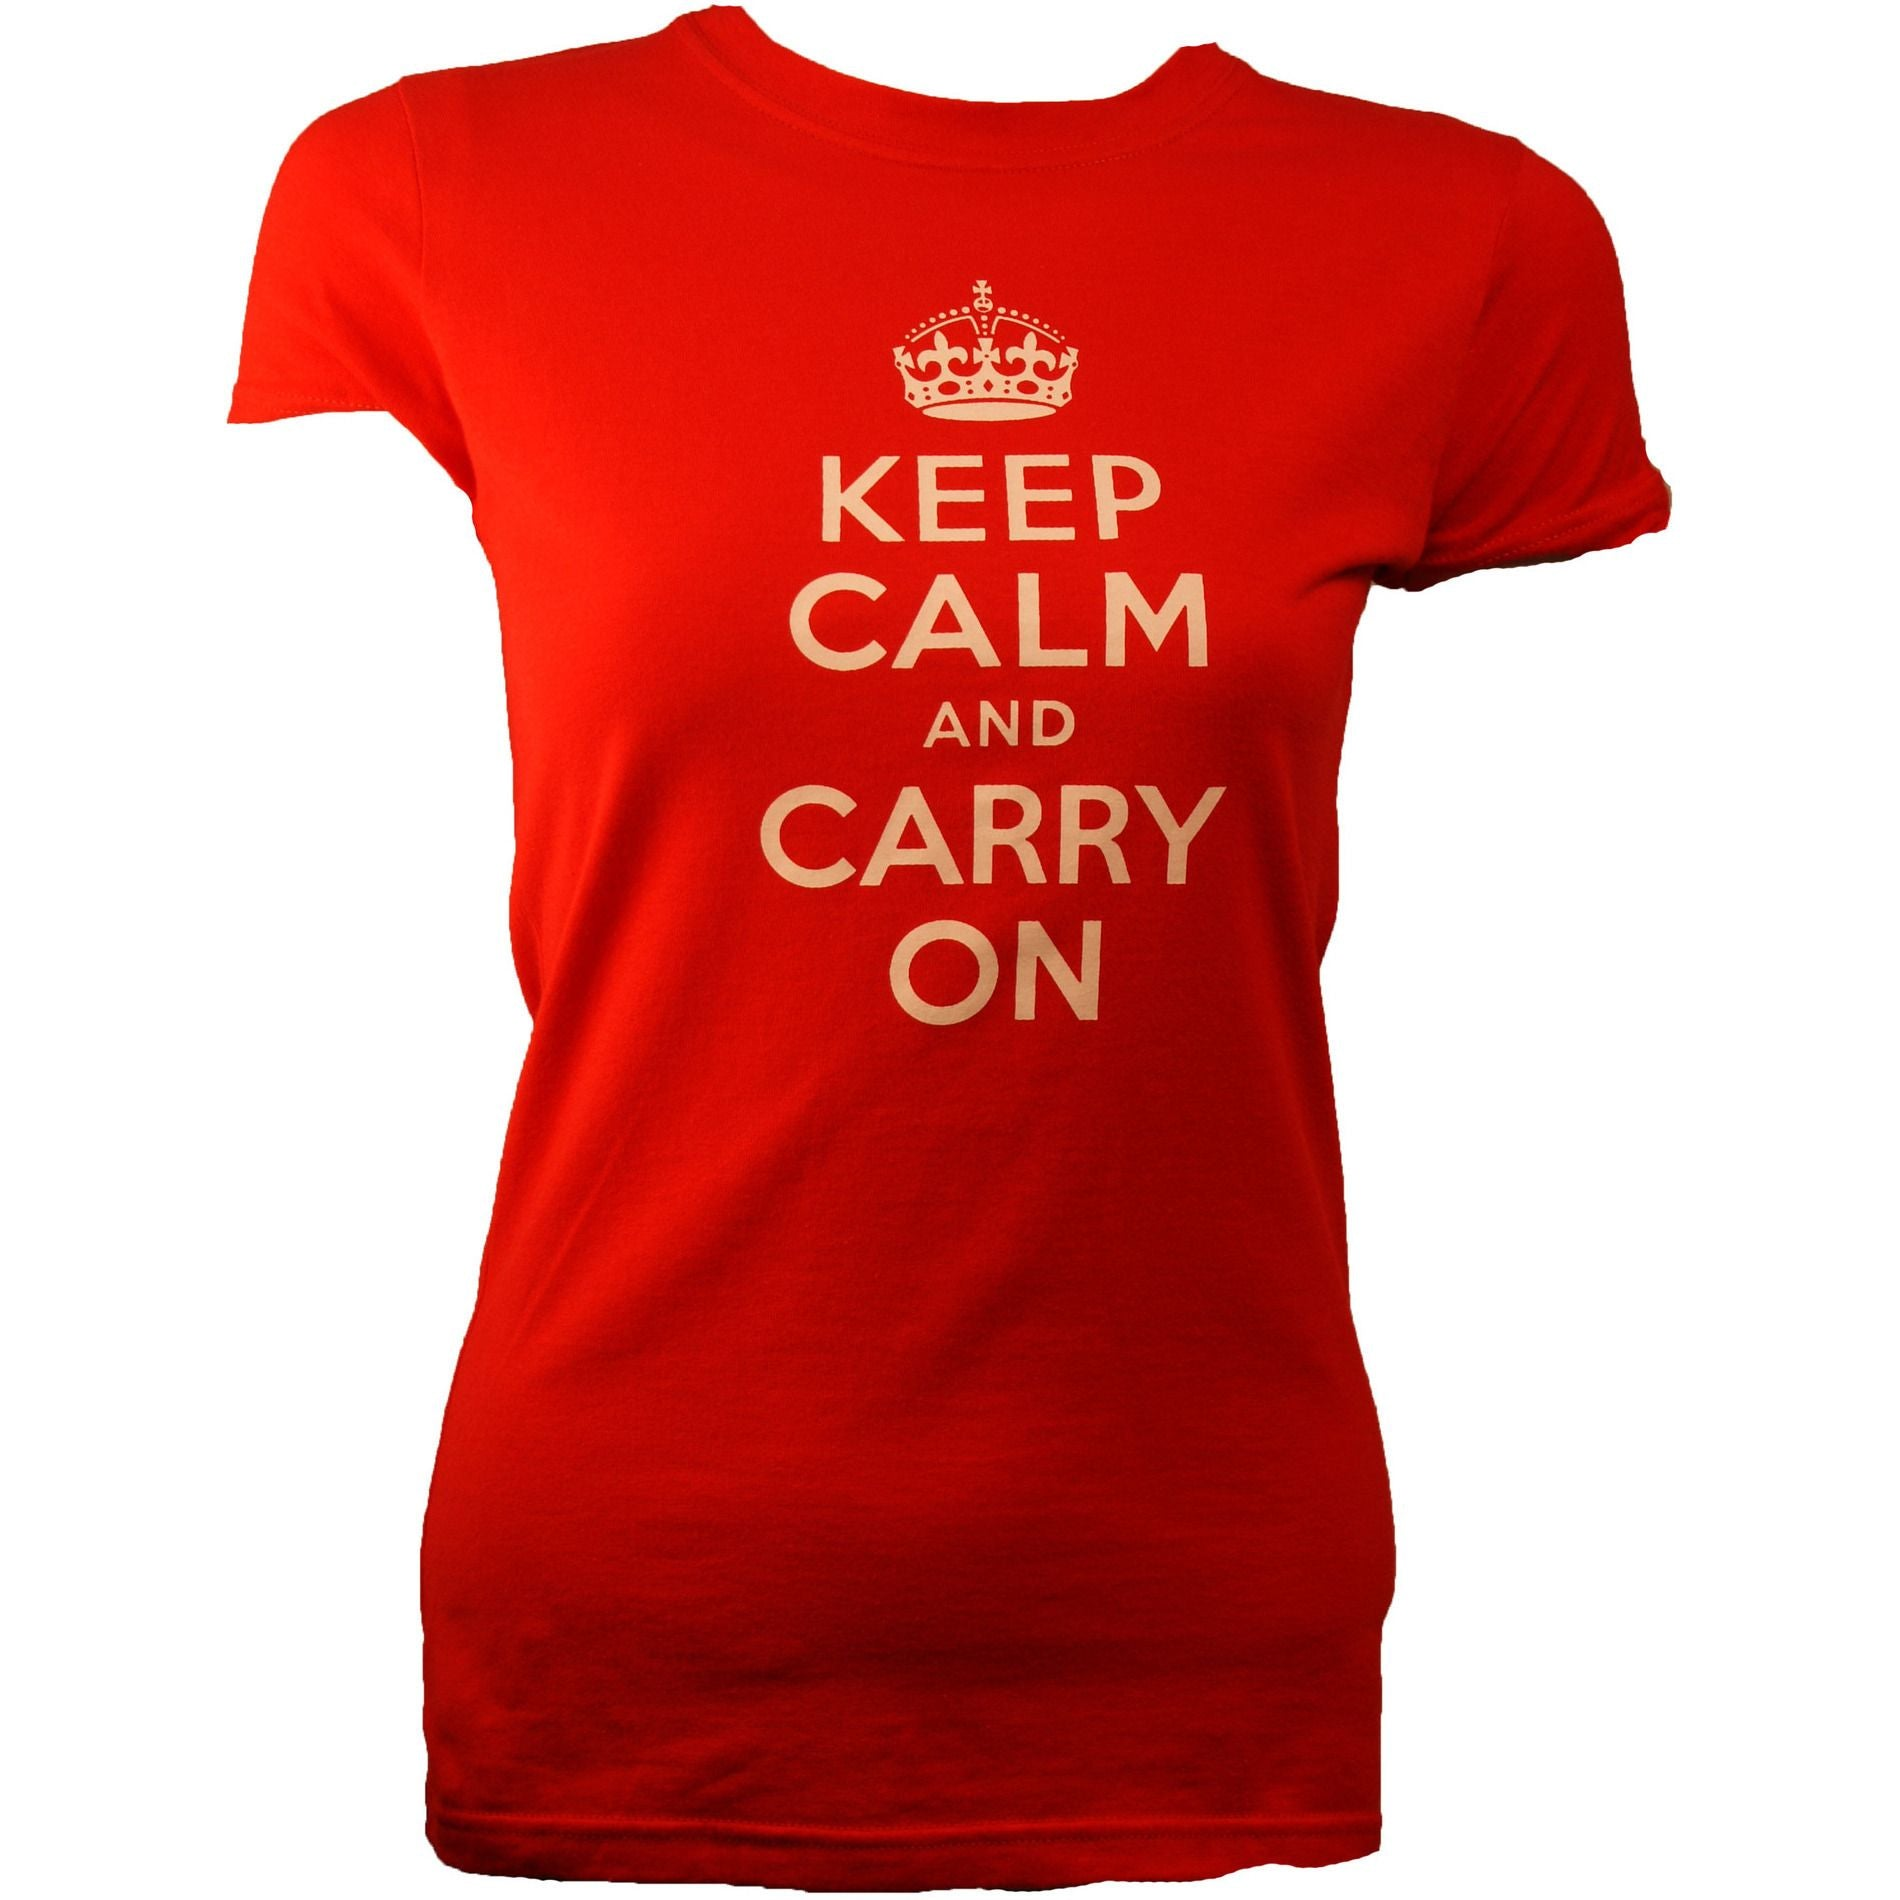 Keep Calm And Carry On Shirt Uncanny!